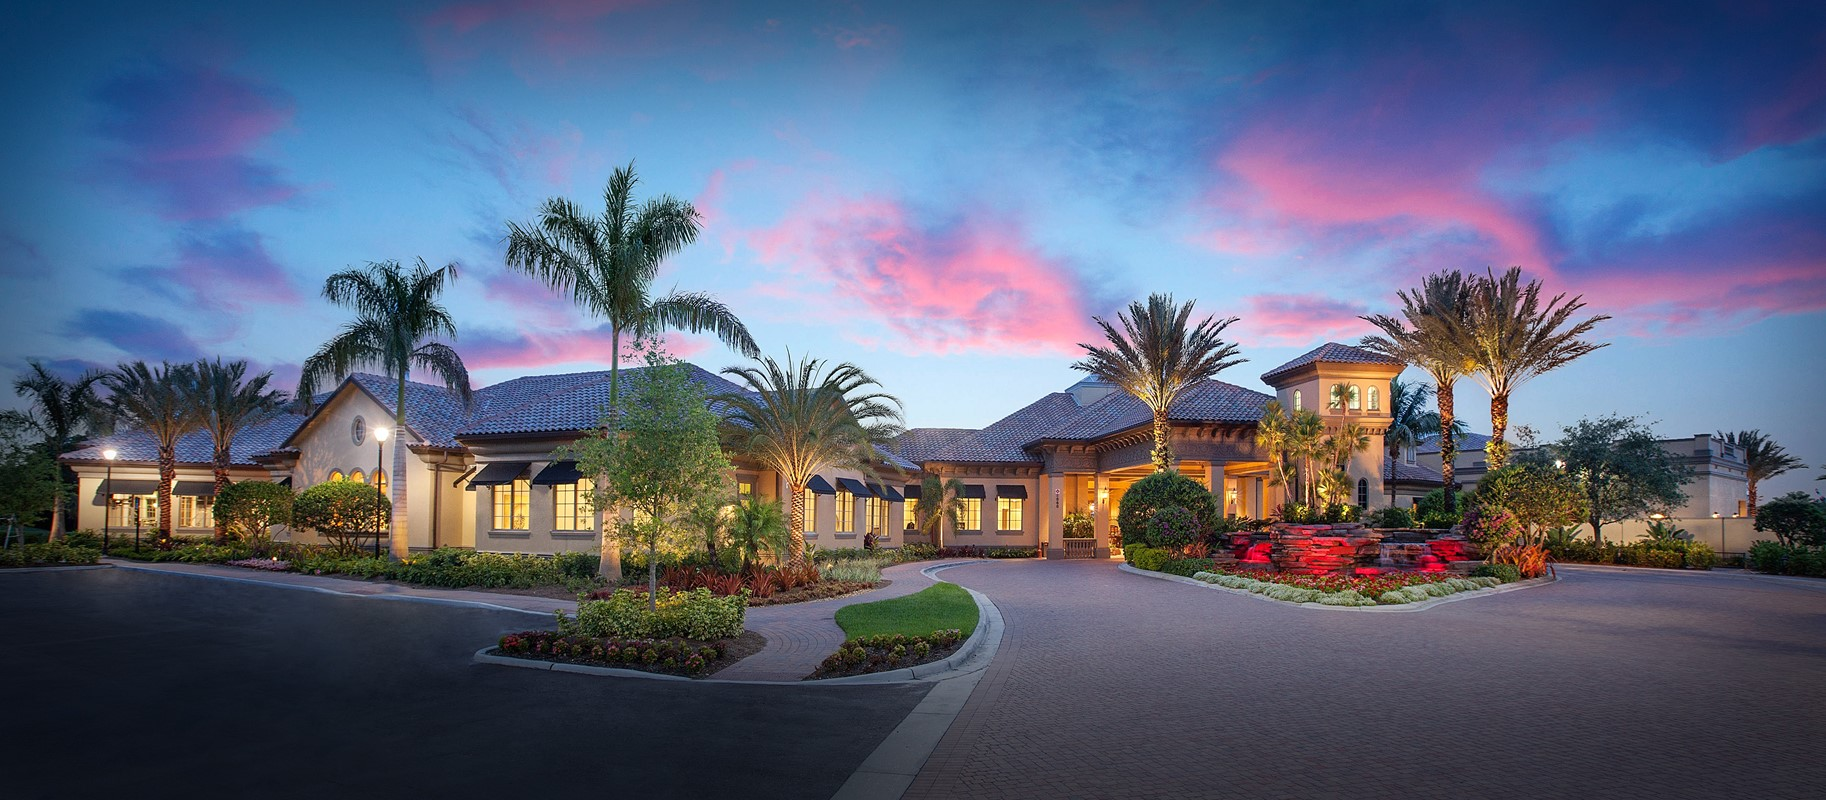 New Homes Sales Are Brisk At Lely Resort: The Eight-Time Community Of The Year Nears Sellout